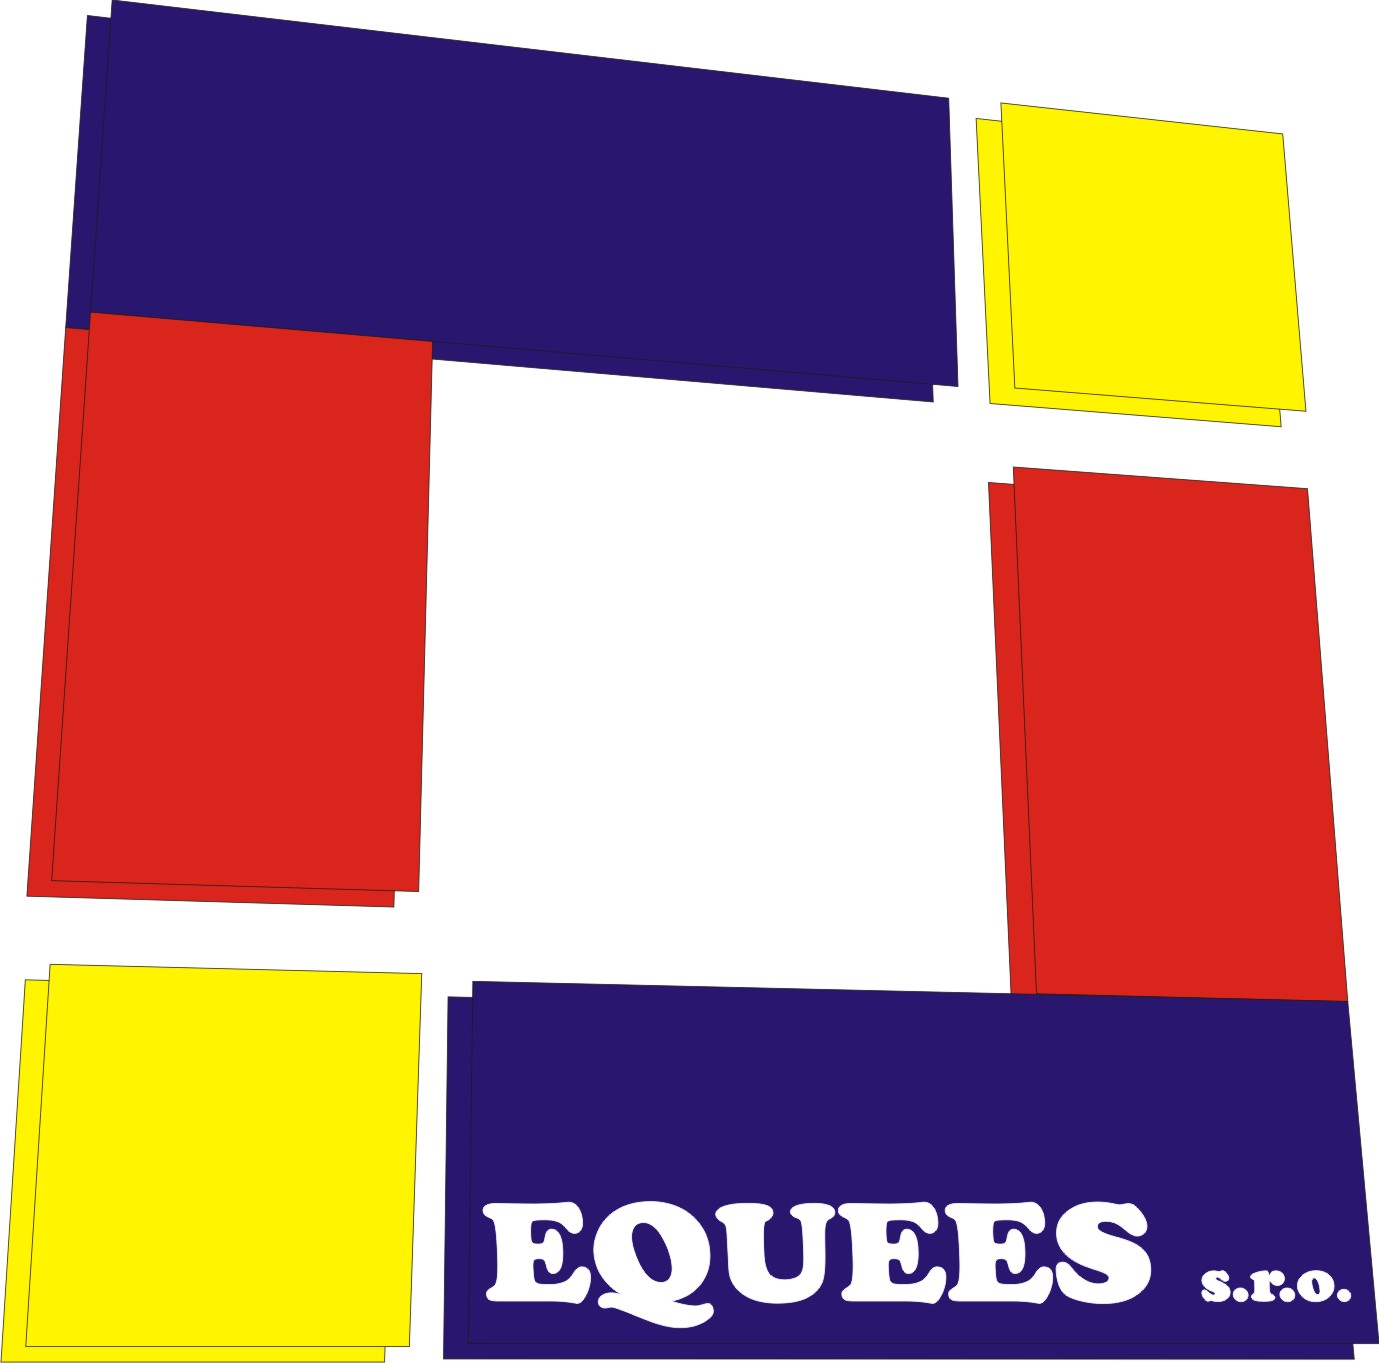 EQUEES, s.r.o.